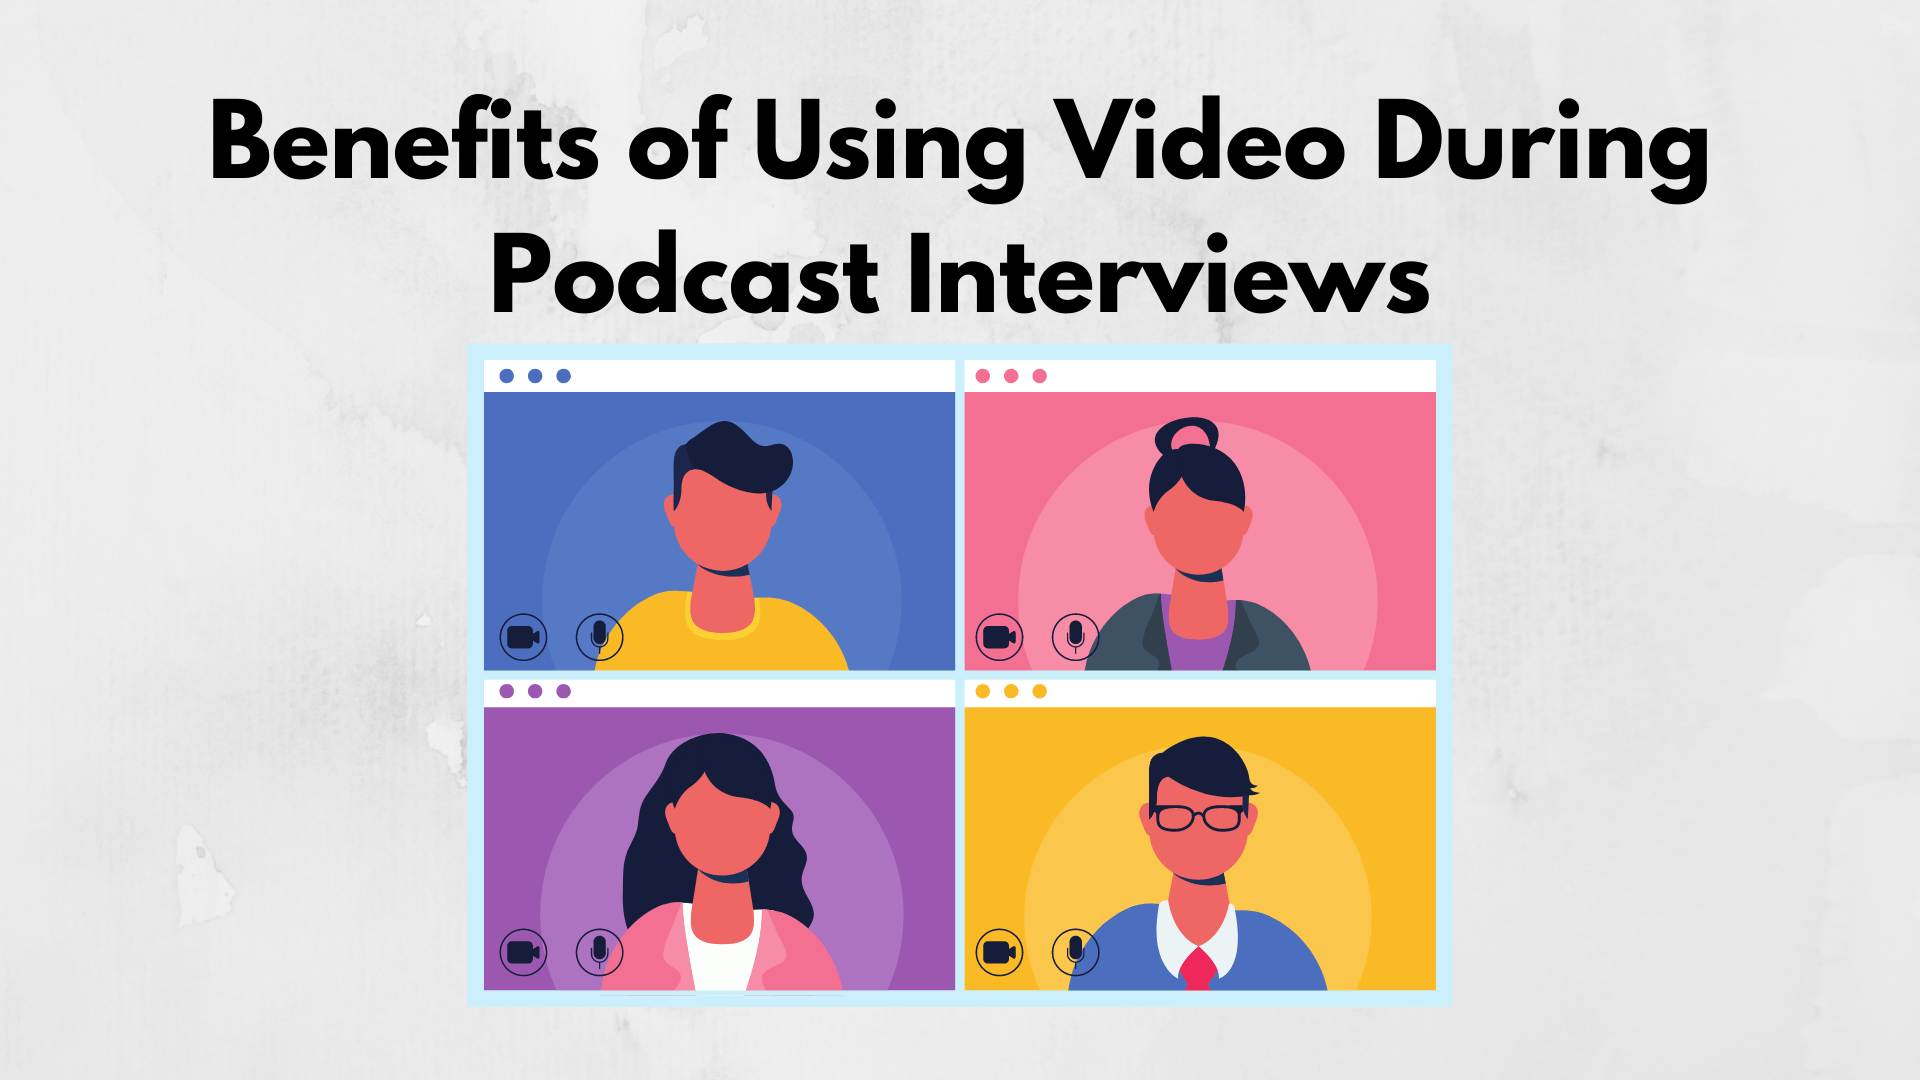 Benefits of Using Video During Podcast Interviews